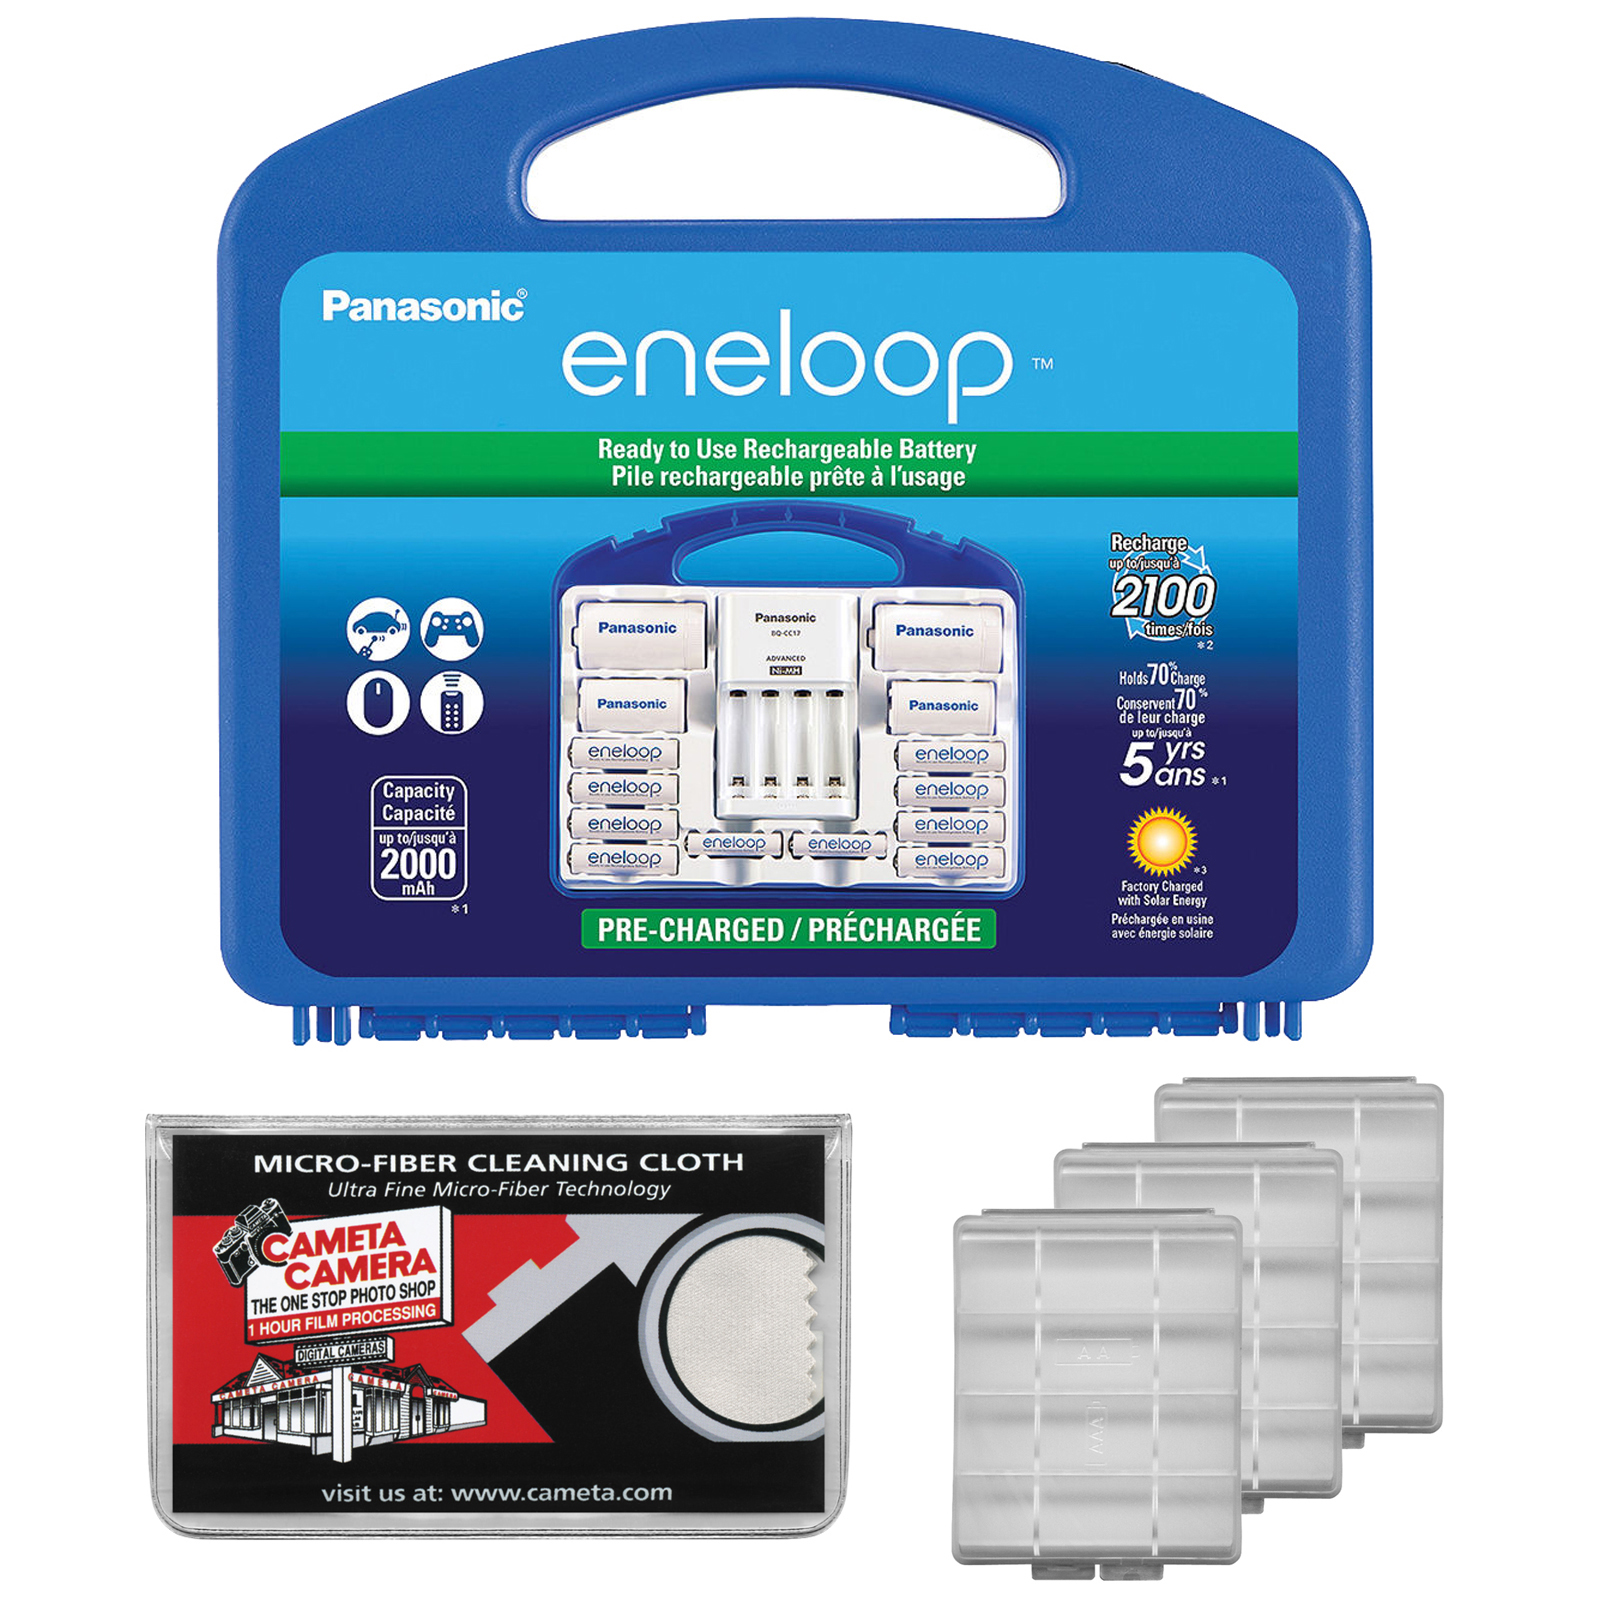 Panasonic eneloop Power Pack Set with 8 AA, 2 AAA Rechargeable Batteries +  Charger & Case with (3) AA/AAA Battery Cases + Microfiber Cleaning Cloth